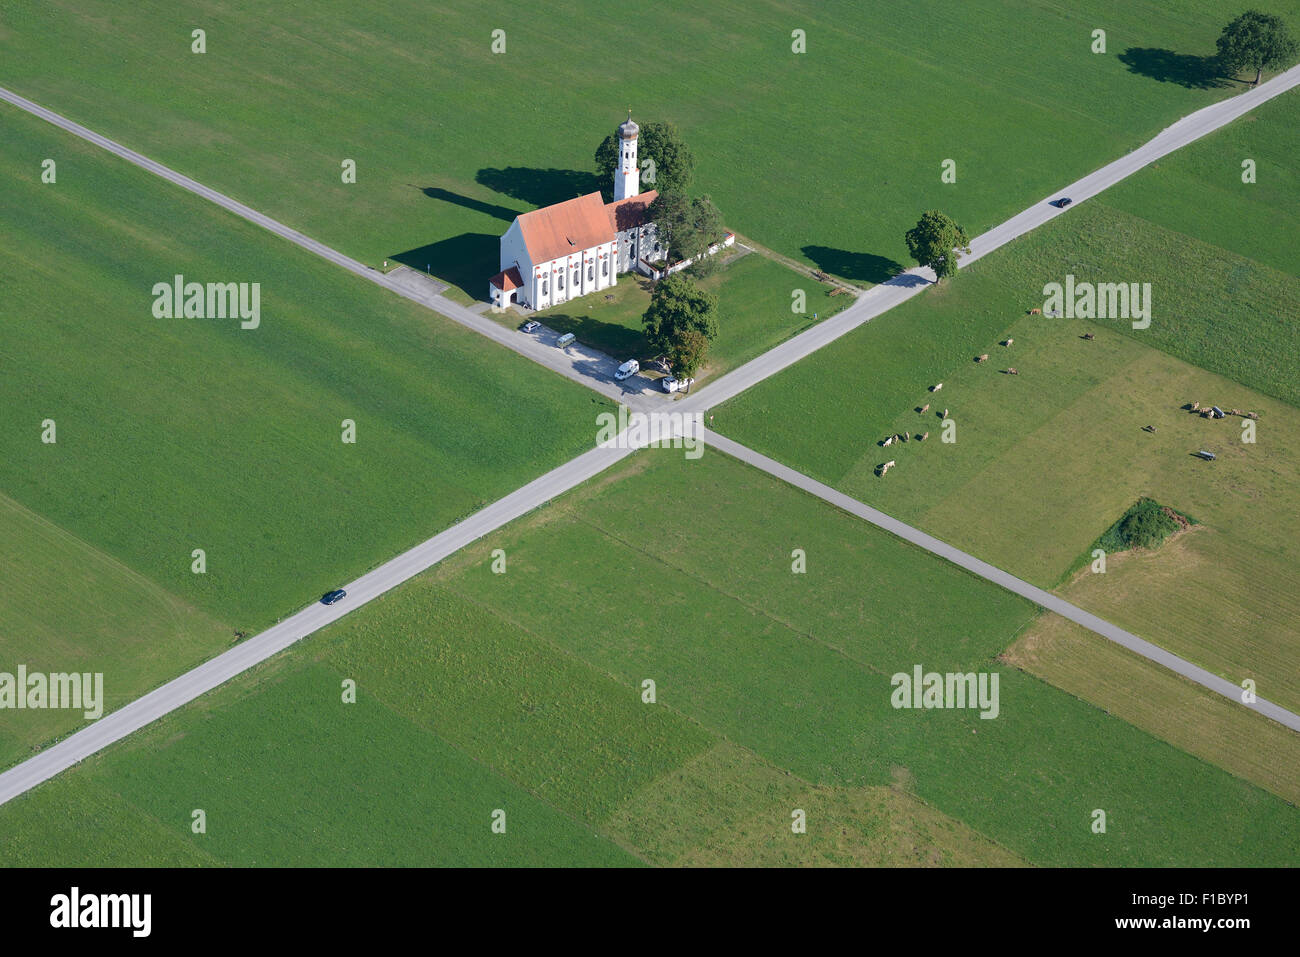 ST. COLOMAN CHURCH (aerial view). Schwangau, Füssen, Bavaria, Germany. - Stock Image